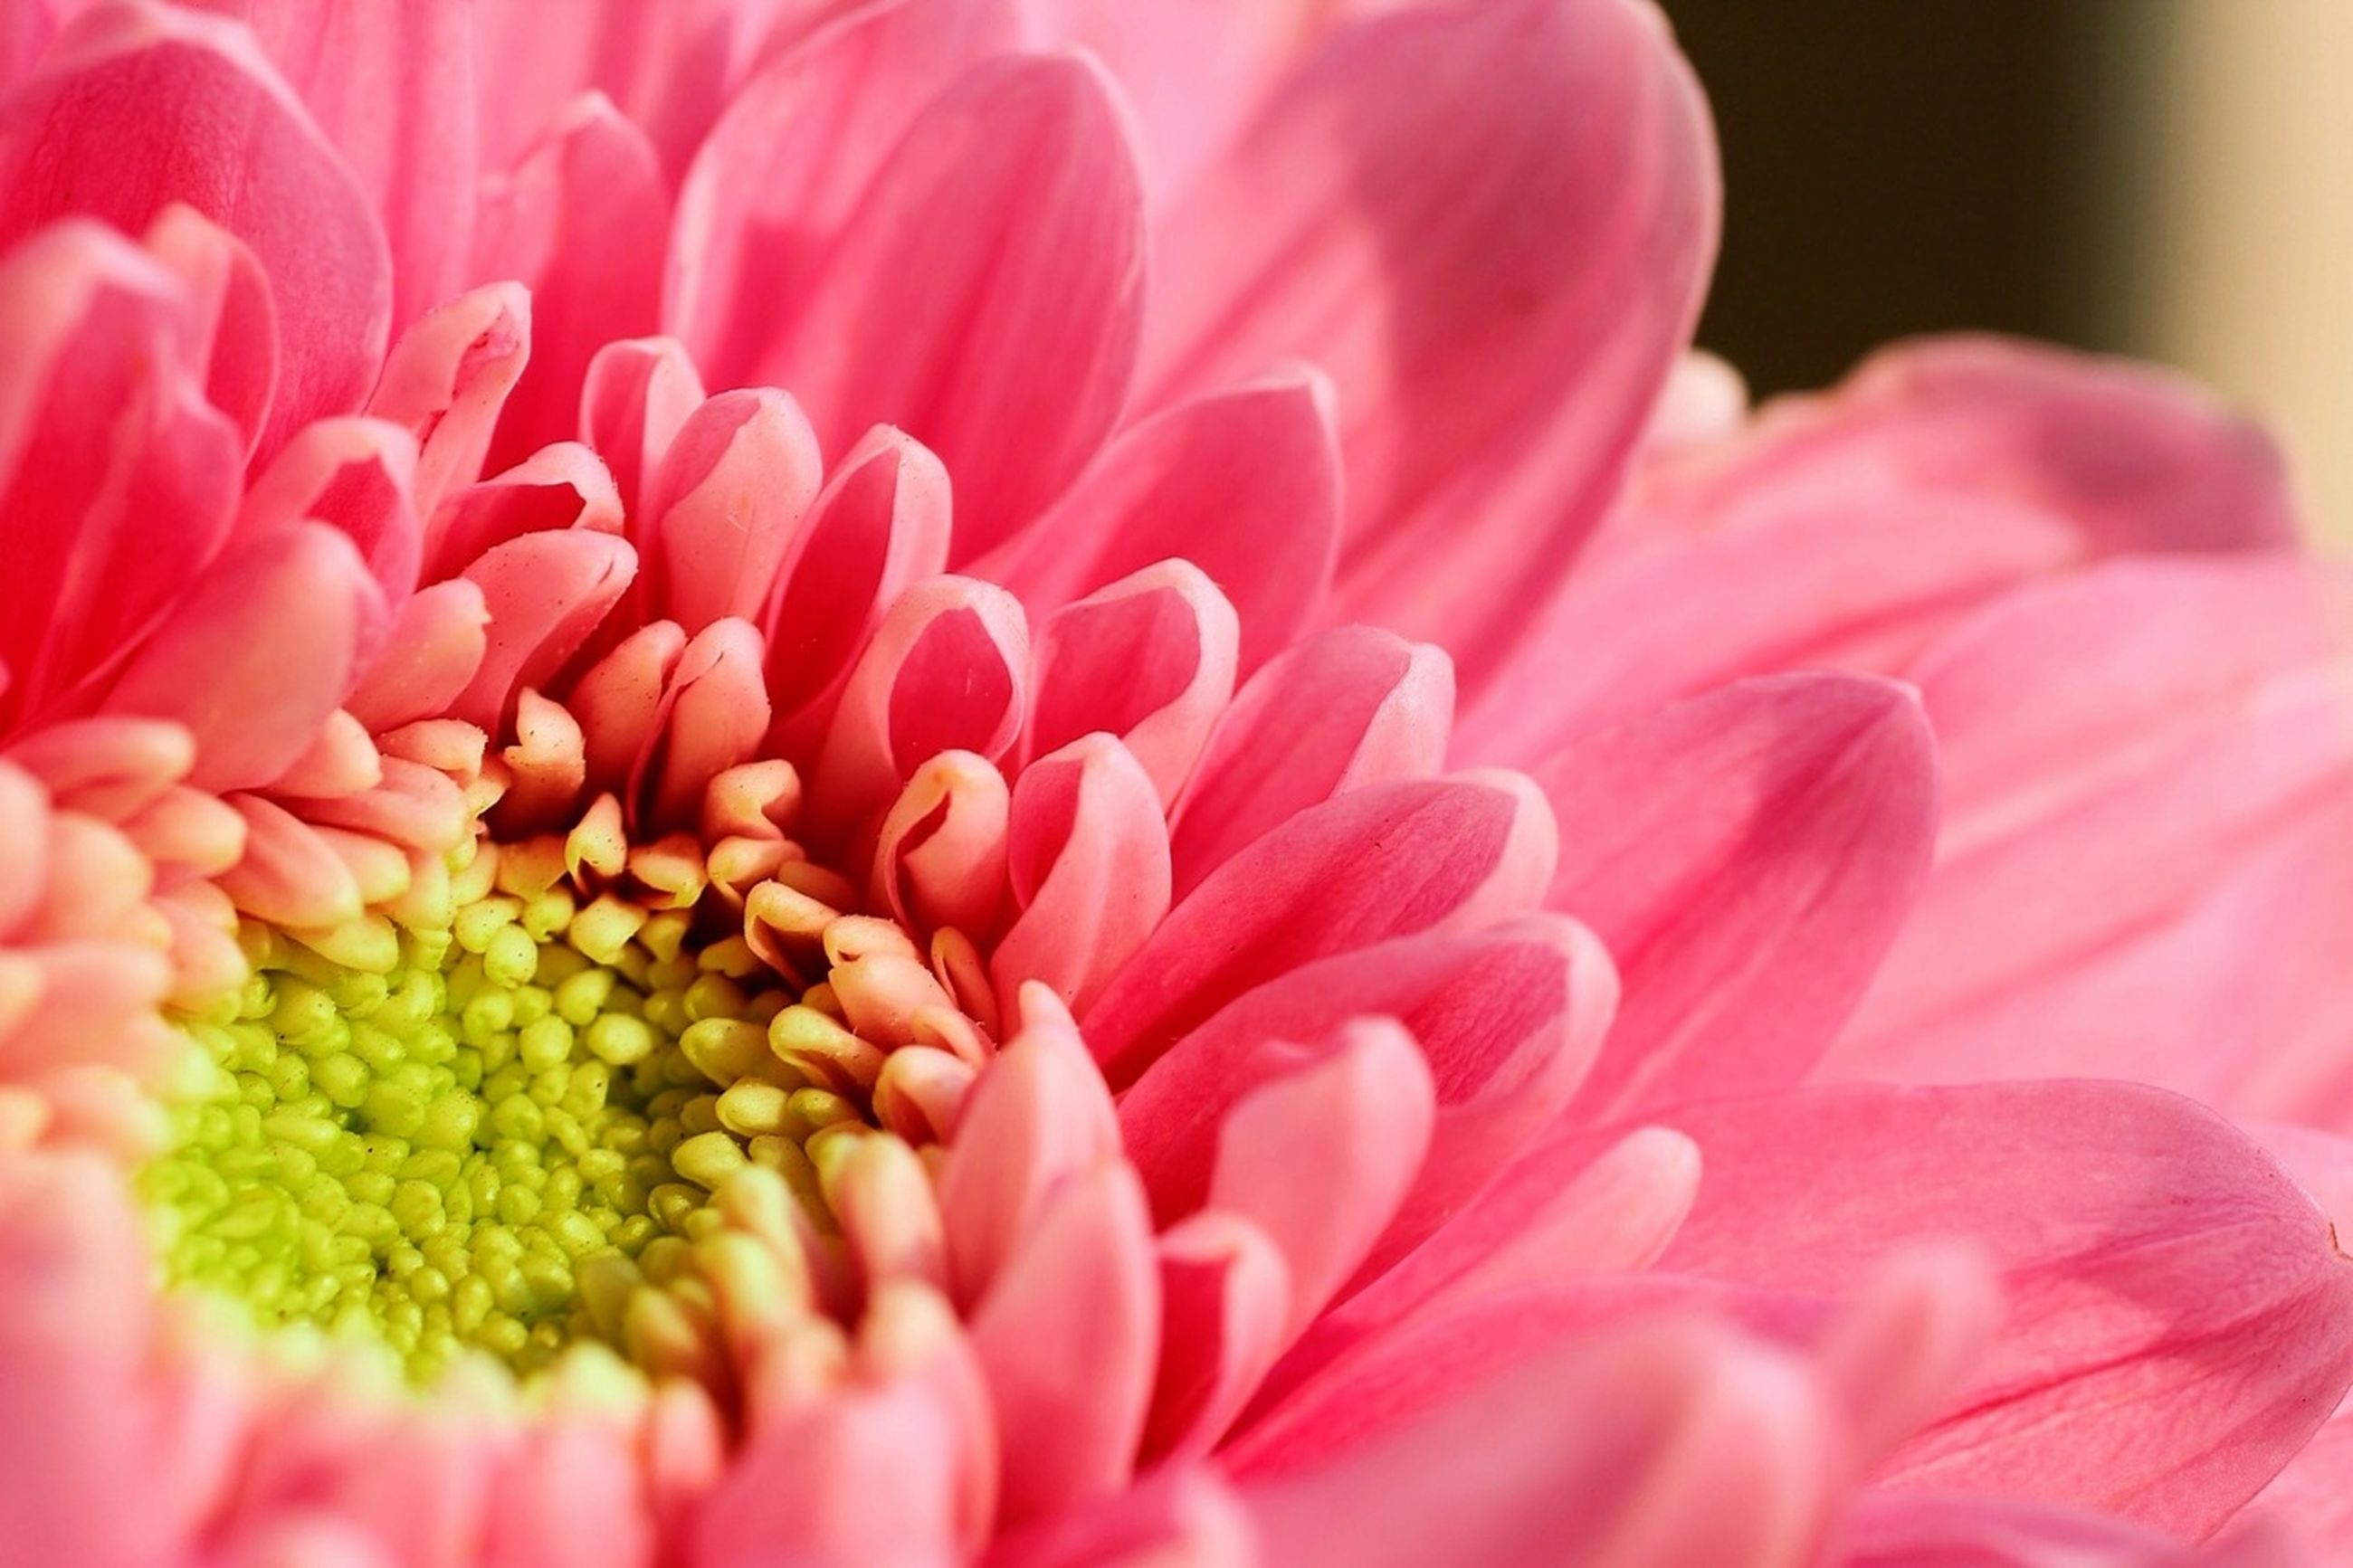 flower, petal, freshness, flower head, fragility, beauty in nature, growth, close-up, pink color, nature, pollen, single flower, blooming, selective focus, pink, red, plant, macro, stamen, in bloom